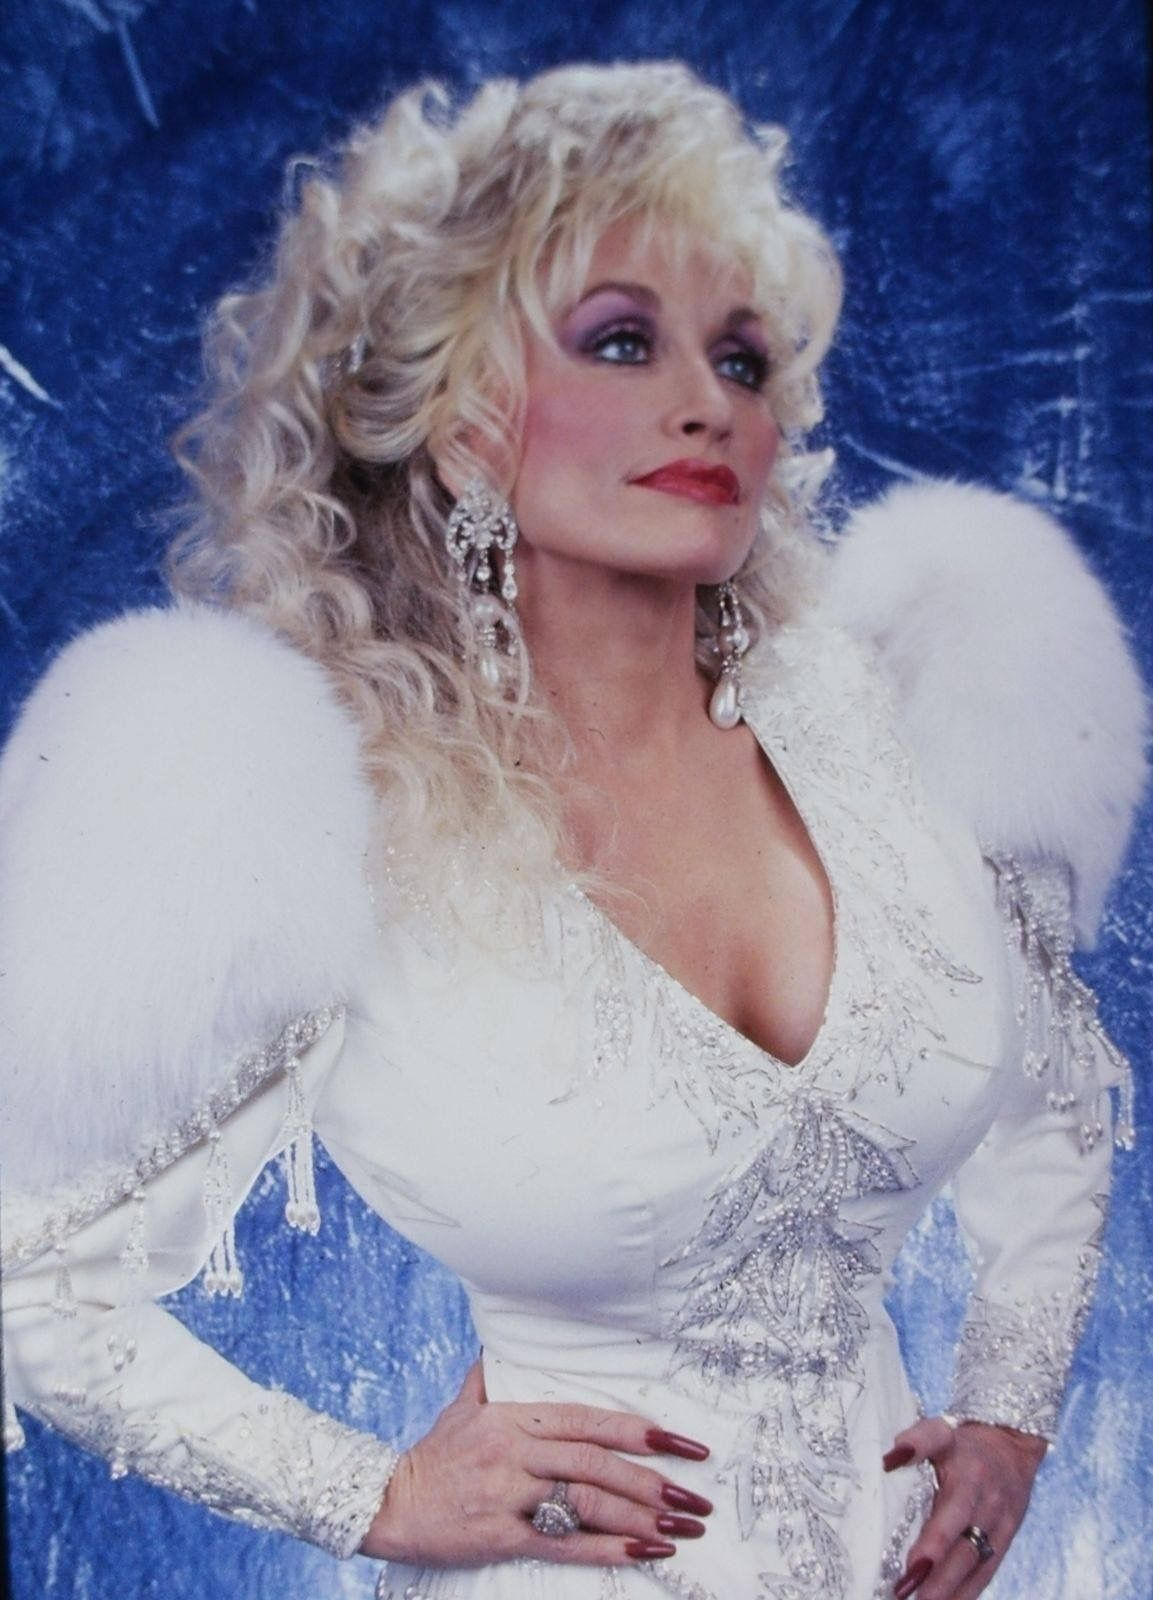 hot or not dolly parton This transcript has been automatically generated and may not be dolly parton receives 2 guinness world records hot-list-dolly-parton-receives.